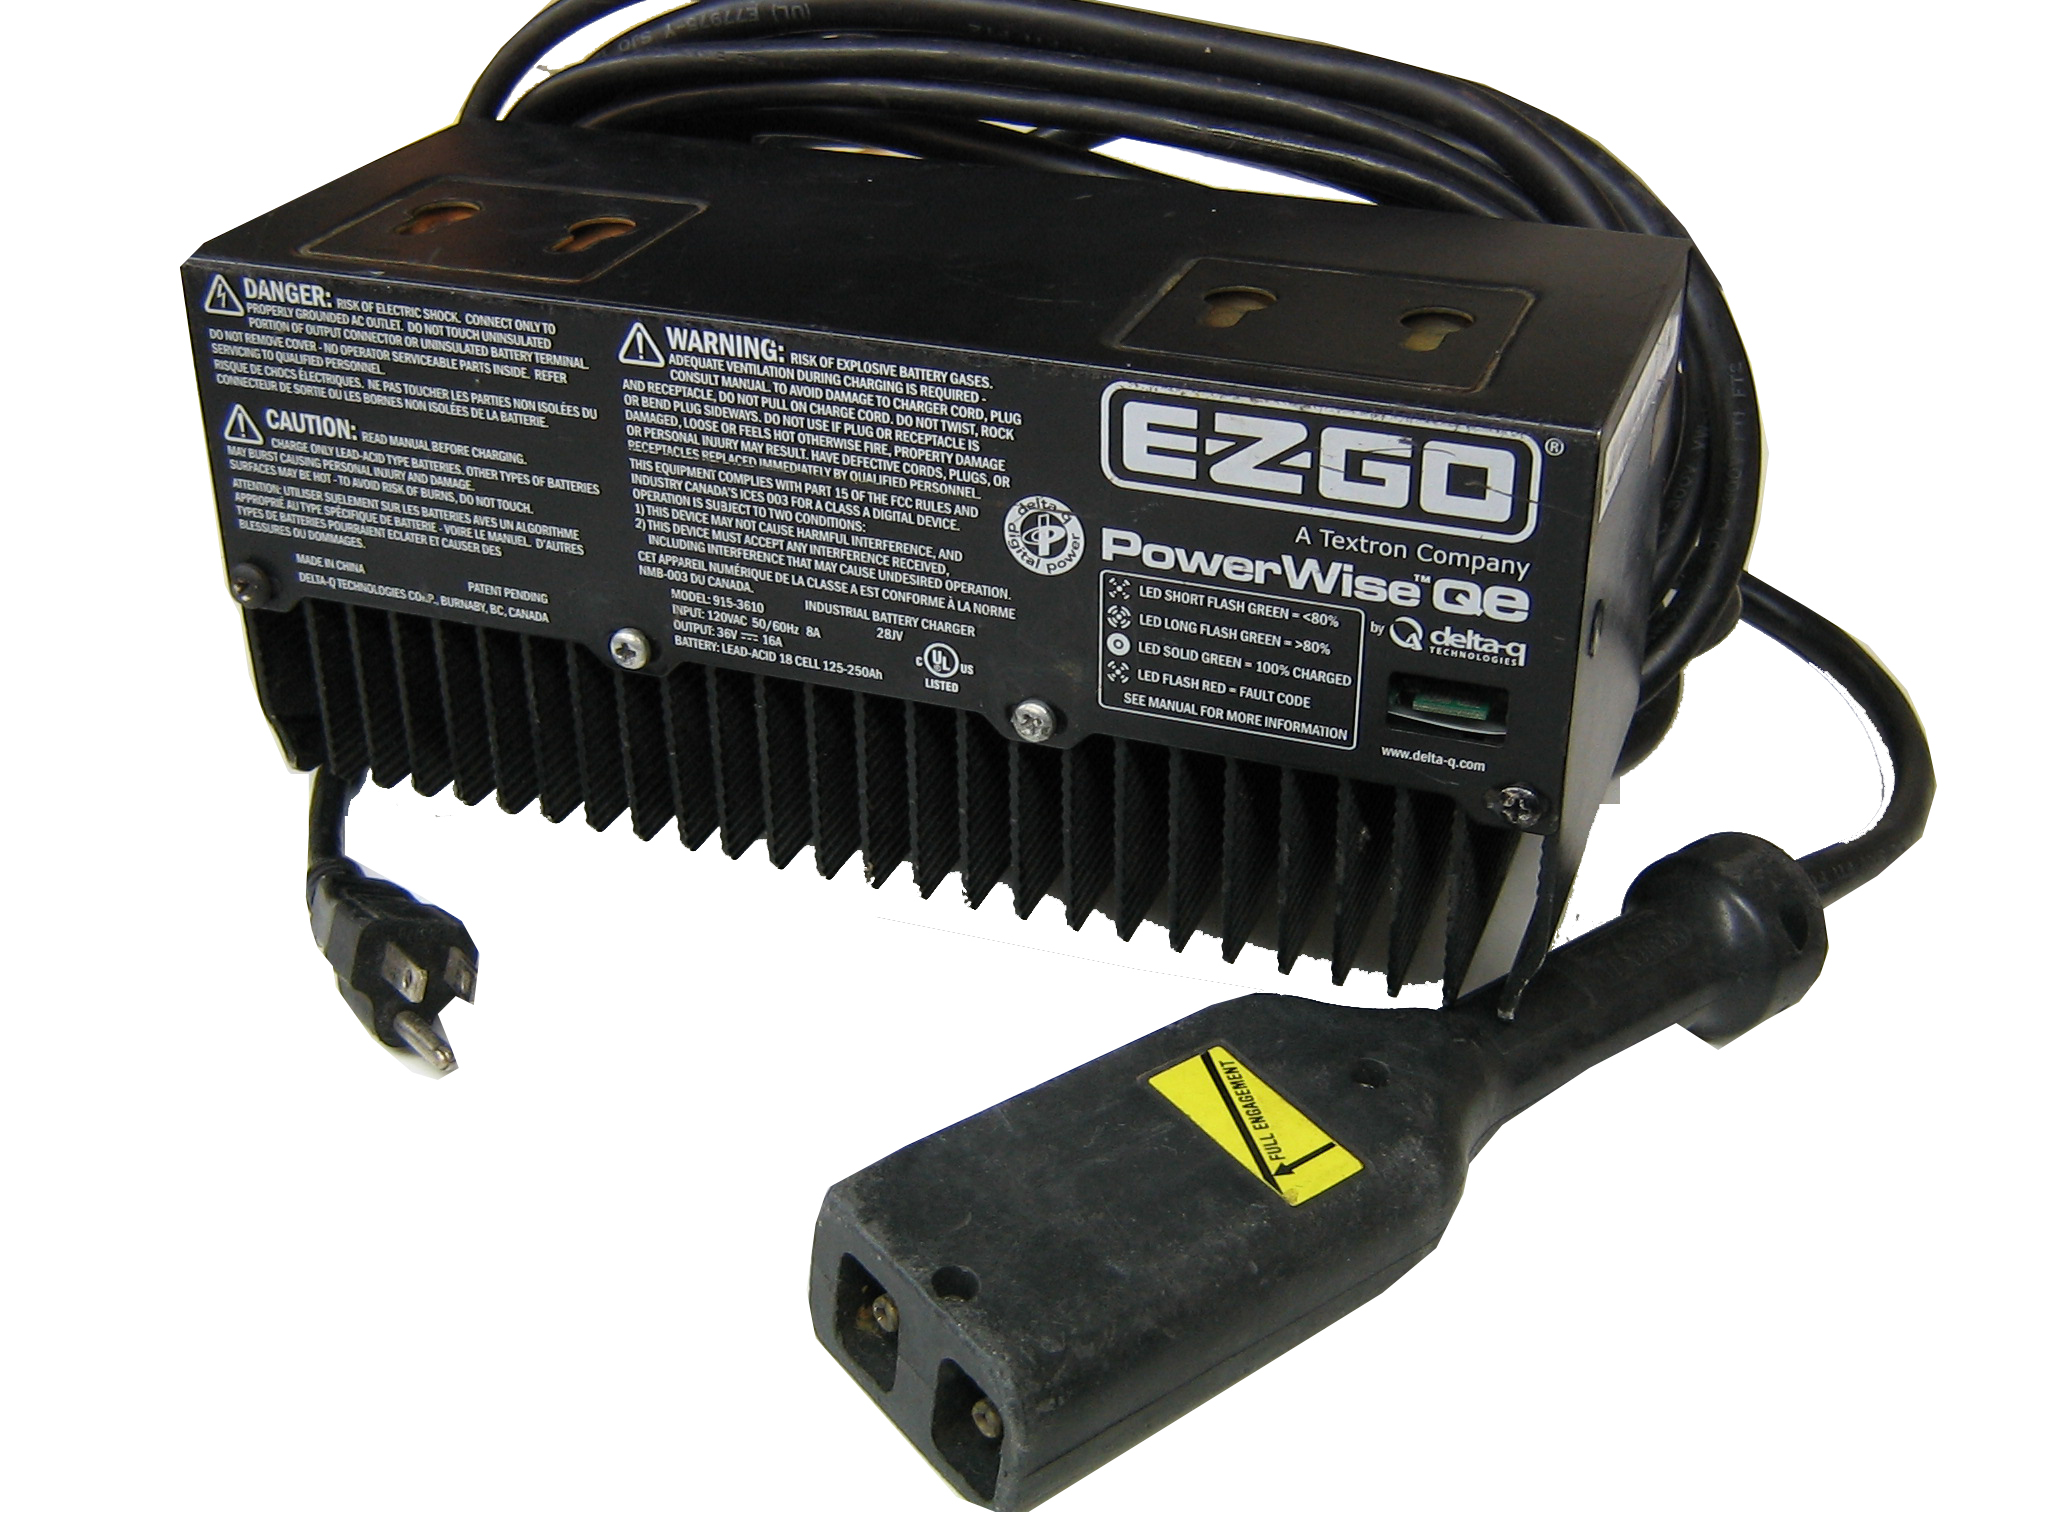 G3610 professionally remanufactured parts with extended warranty powerwise charger wiring diagram at crackthecode.co